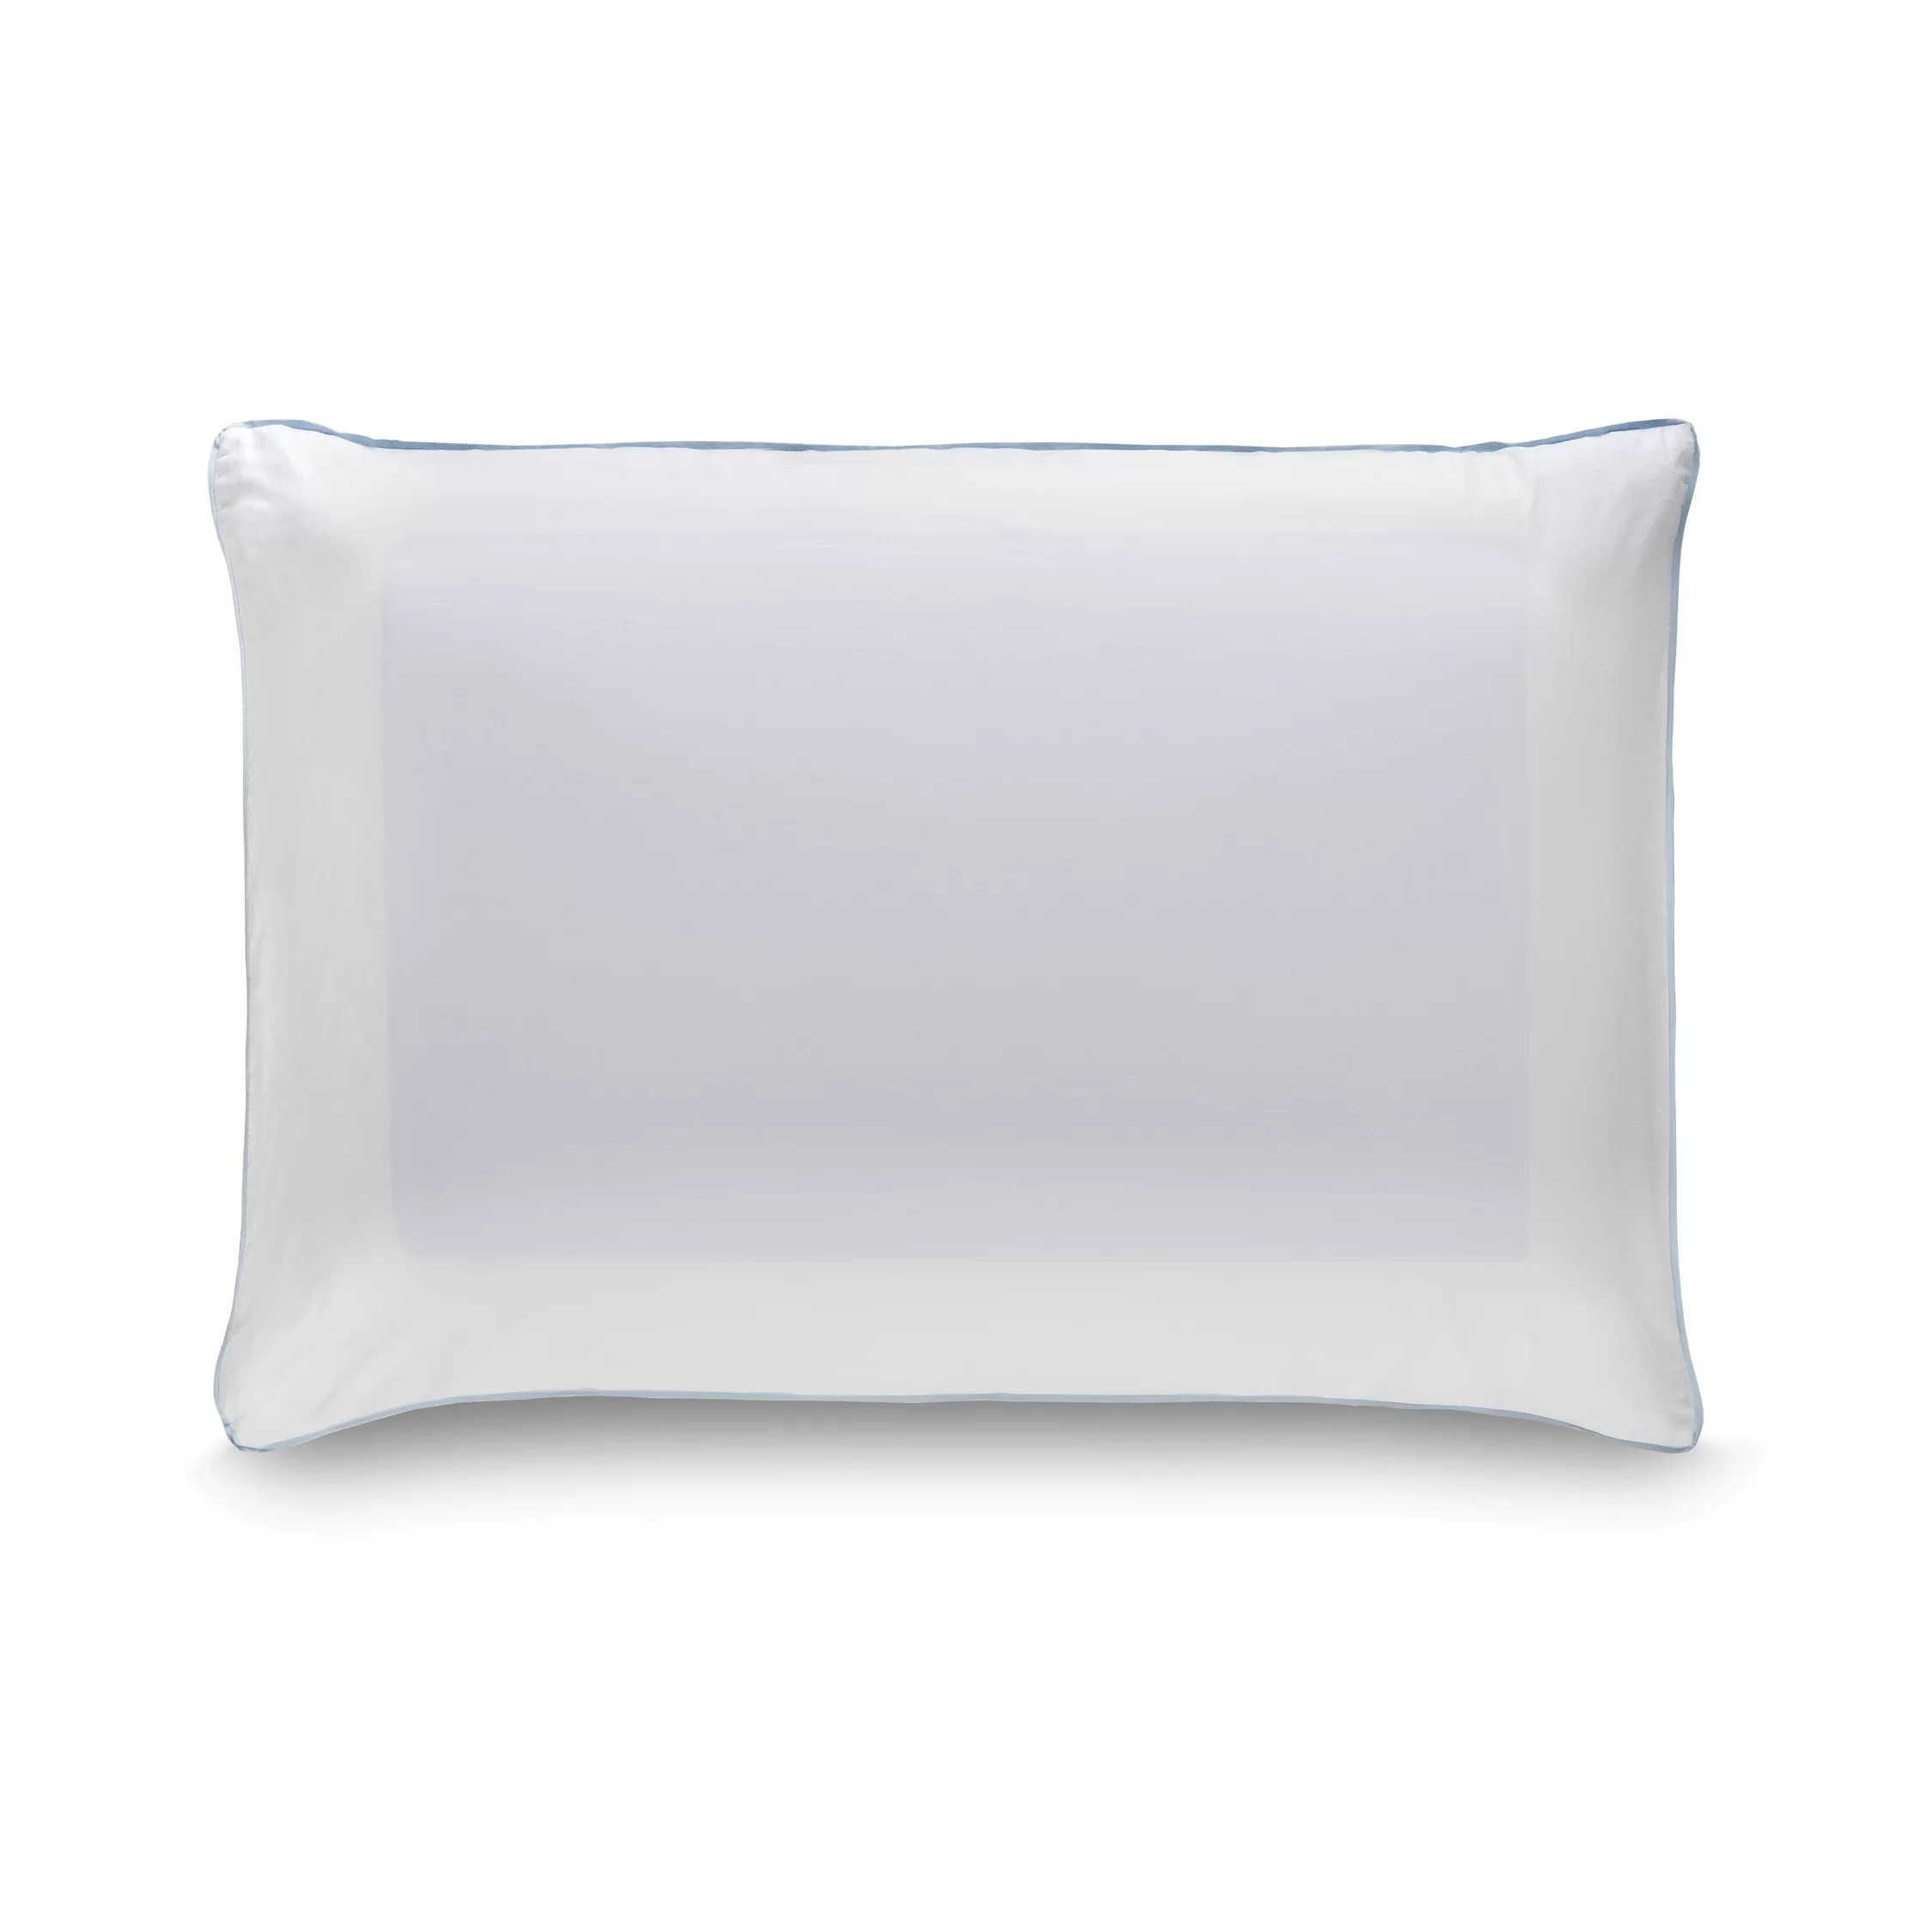 TempurPedic Cloud Breeze Dual Cooling Memory Foam Pillow